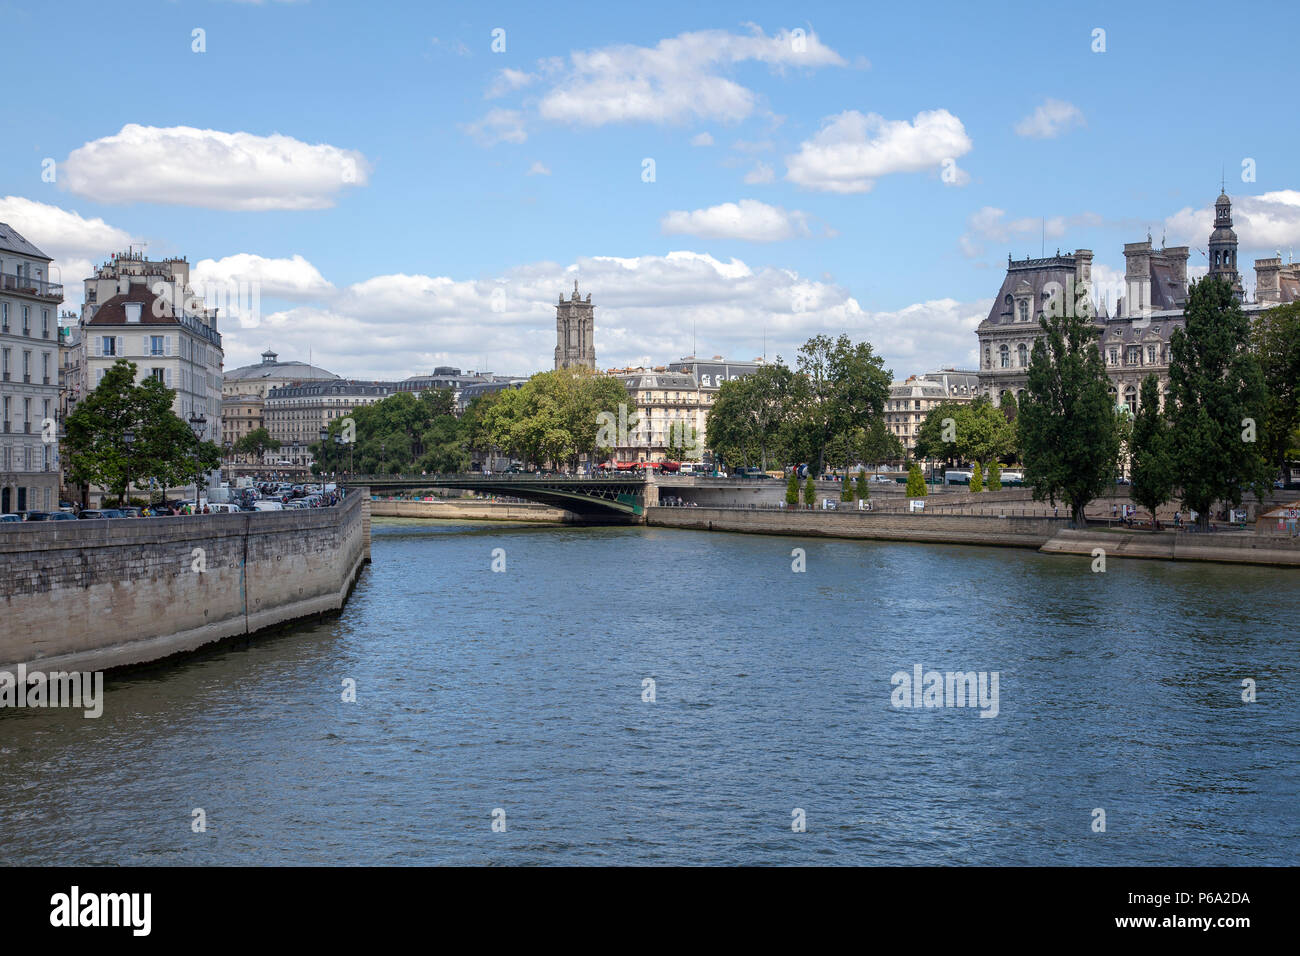 Views From Pont Saint-Louis in Paris, France - Stock Image